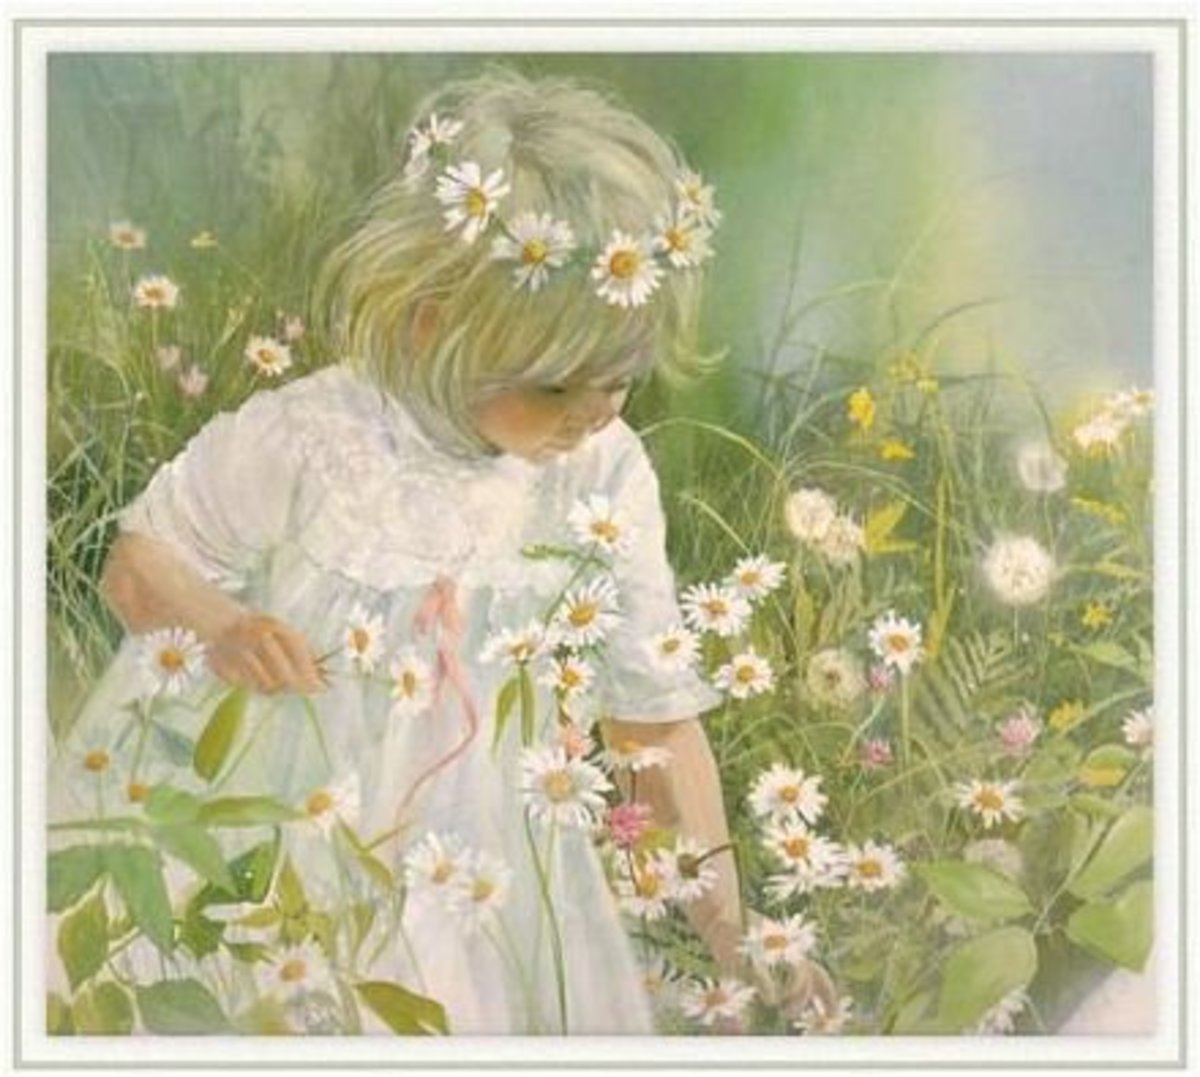 How To Make A Flower Crown, Chain or Garland. Crown of Daisies, Haiku